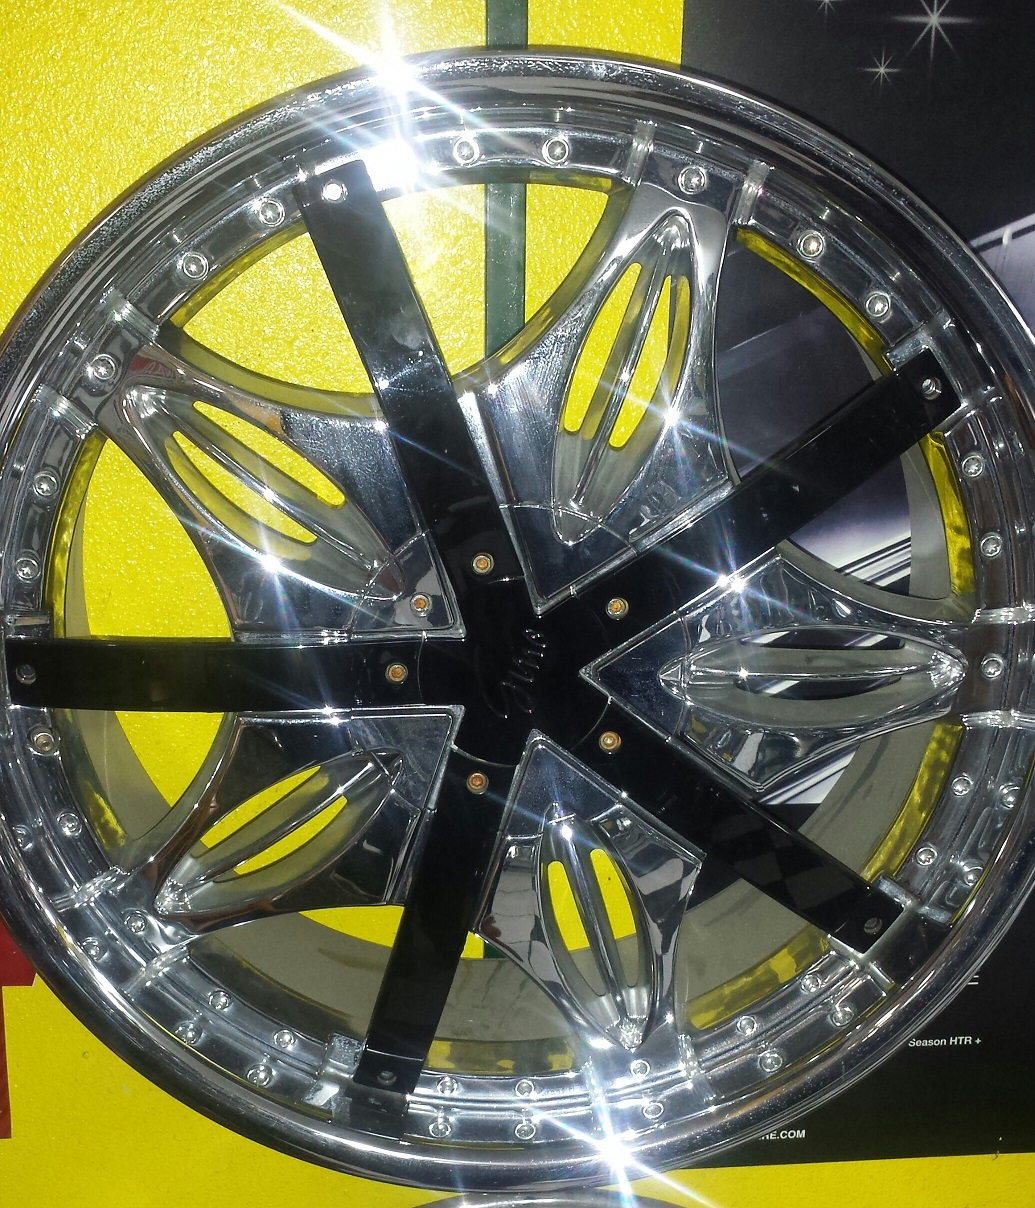 22 Special on wheels Brand Gino 582 22x95 bolt pattern 6x139 TWO LOCATIONS Business websit